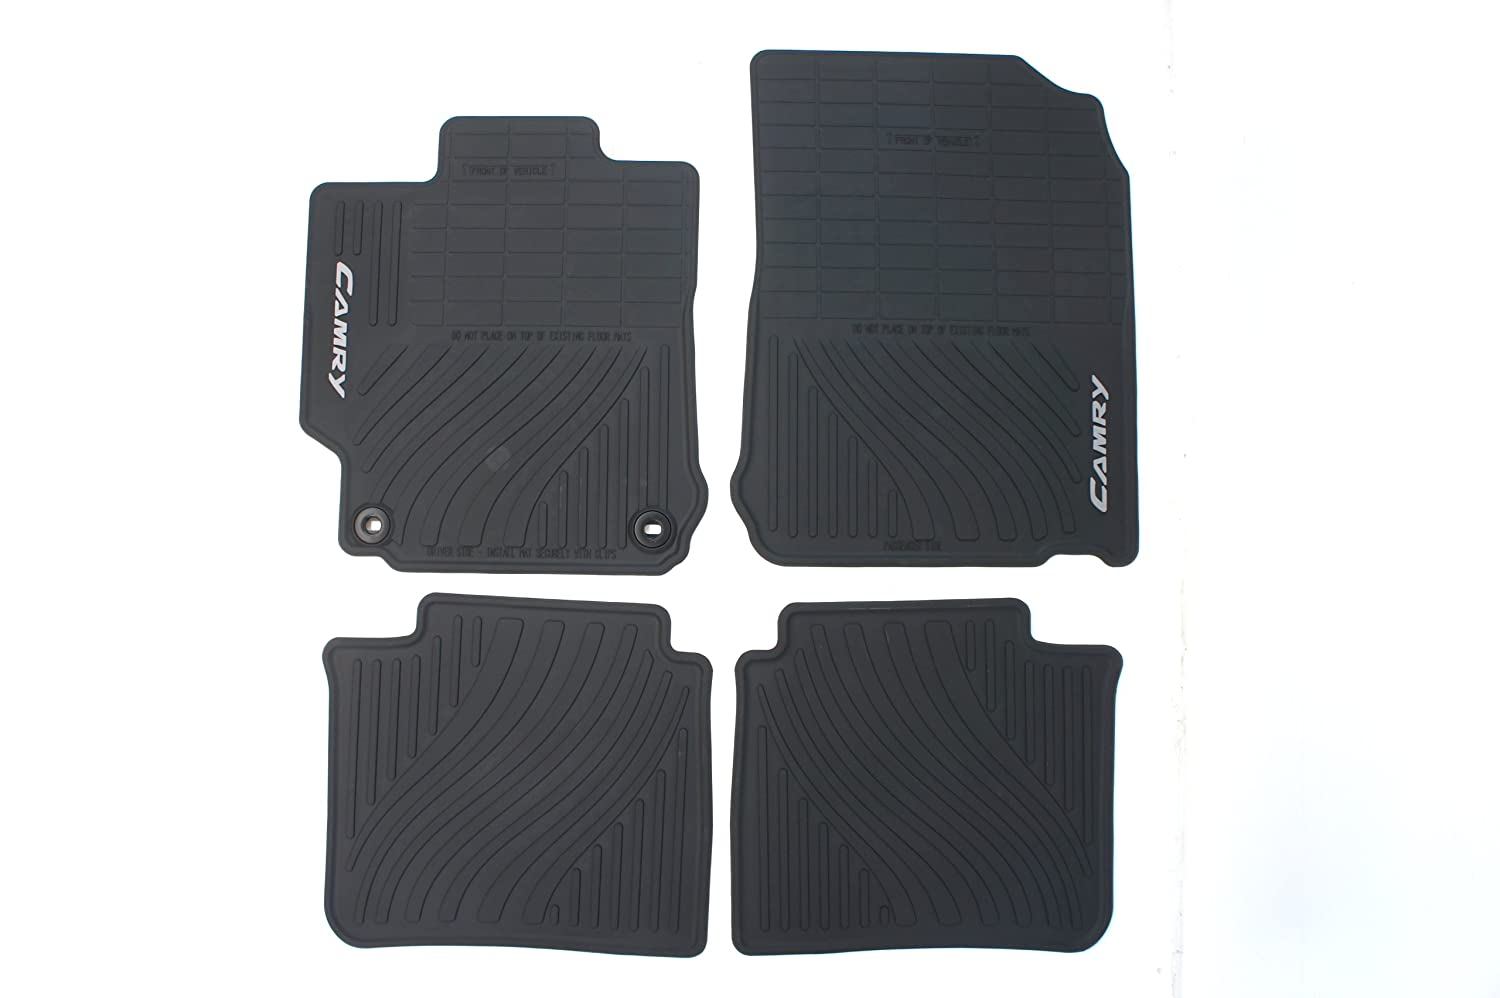 Rubber floor mats toyota camry - Amazon Com Genuine Toyota Accessories Pt908 03120 20 Front And Rear All Weather Floor Mat Black Set Of 4 Automotive